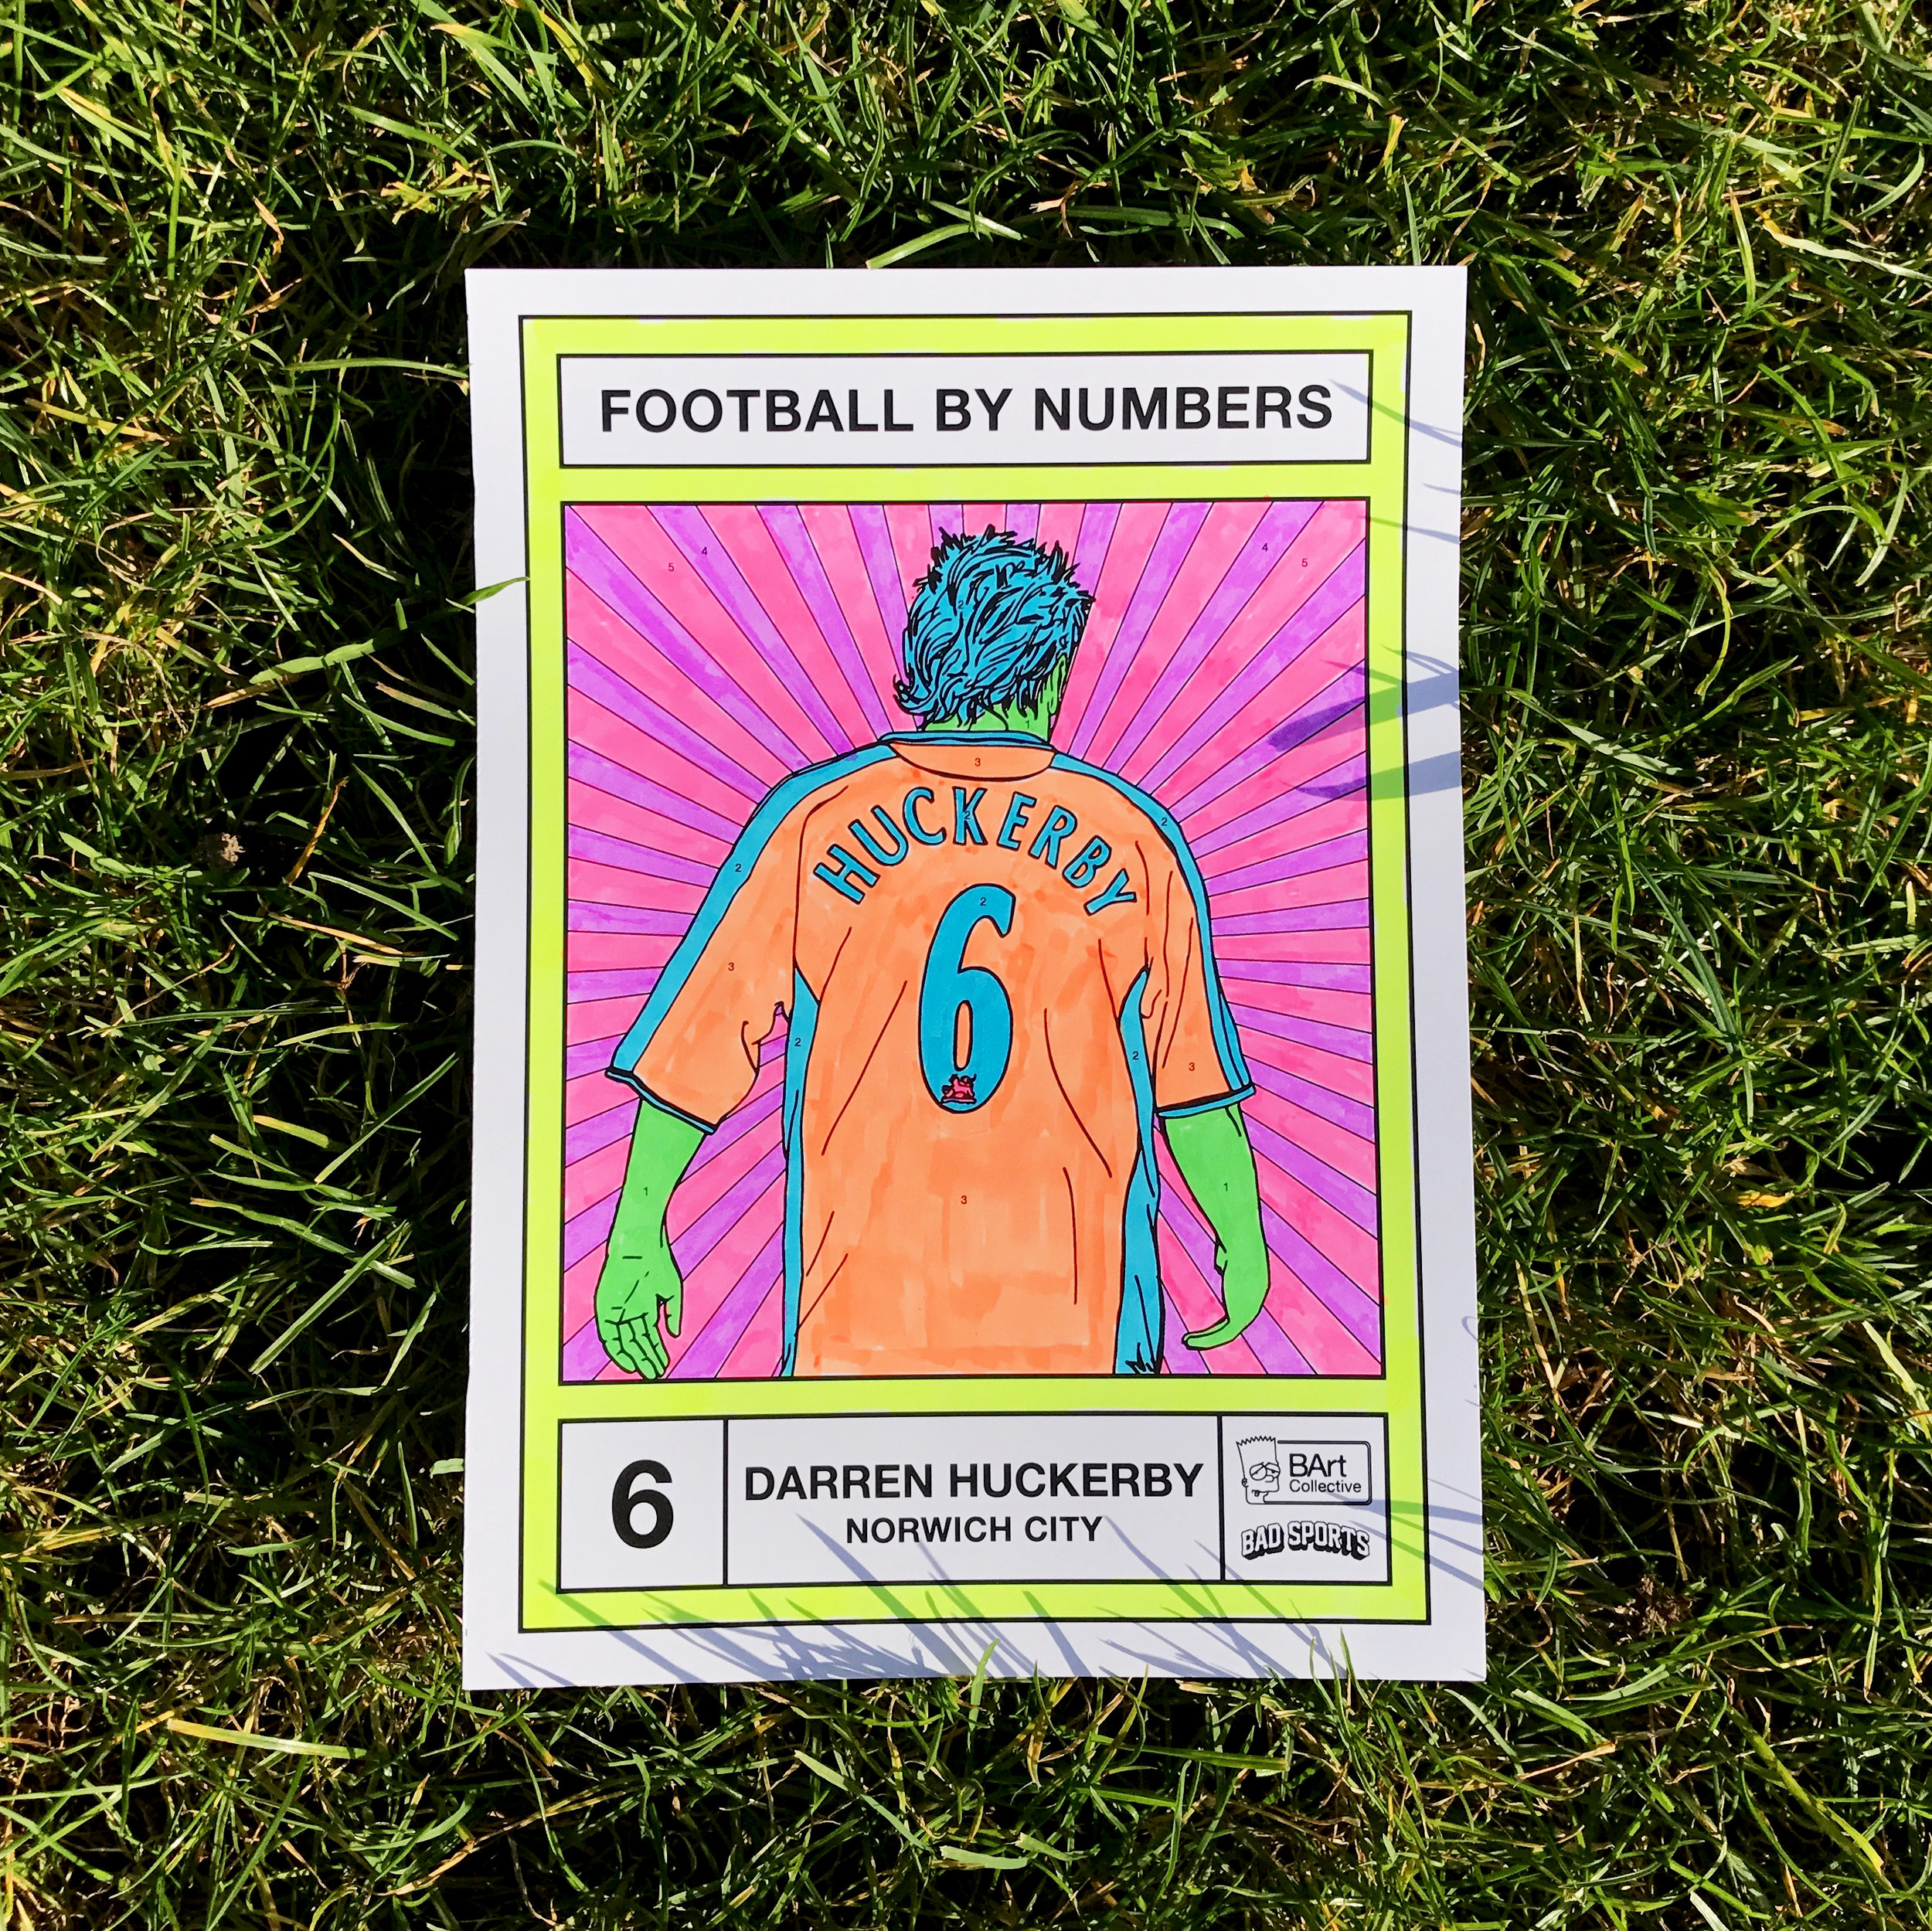 Darren Huckerby for Football By Numbers